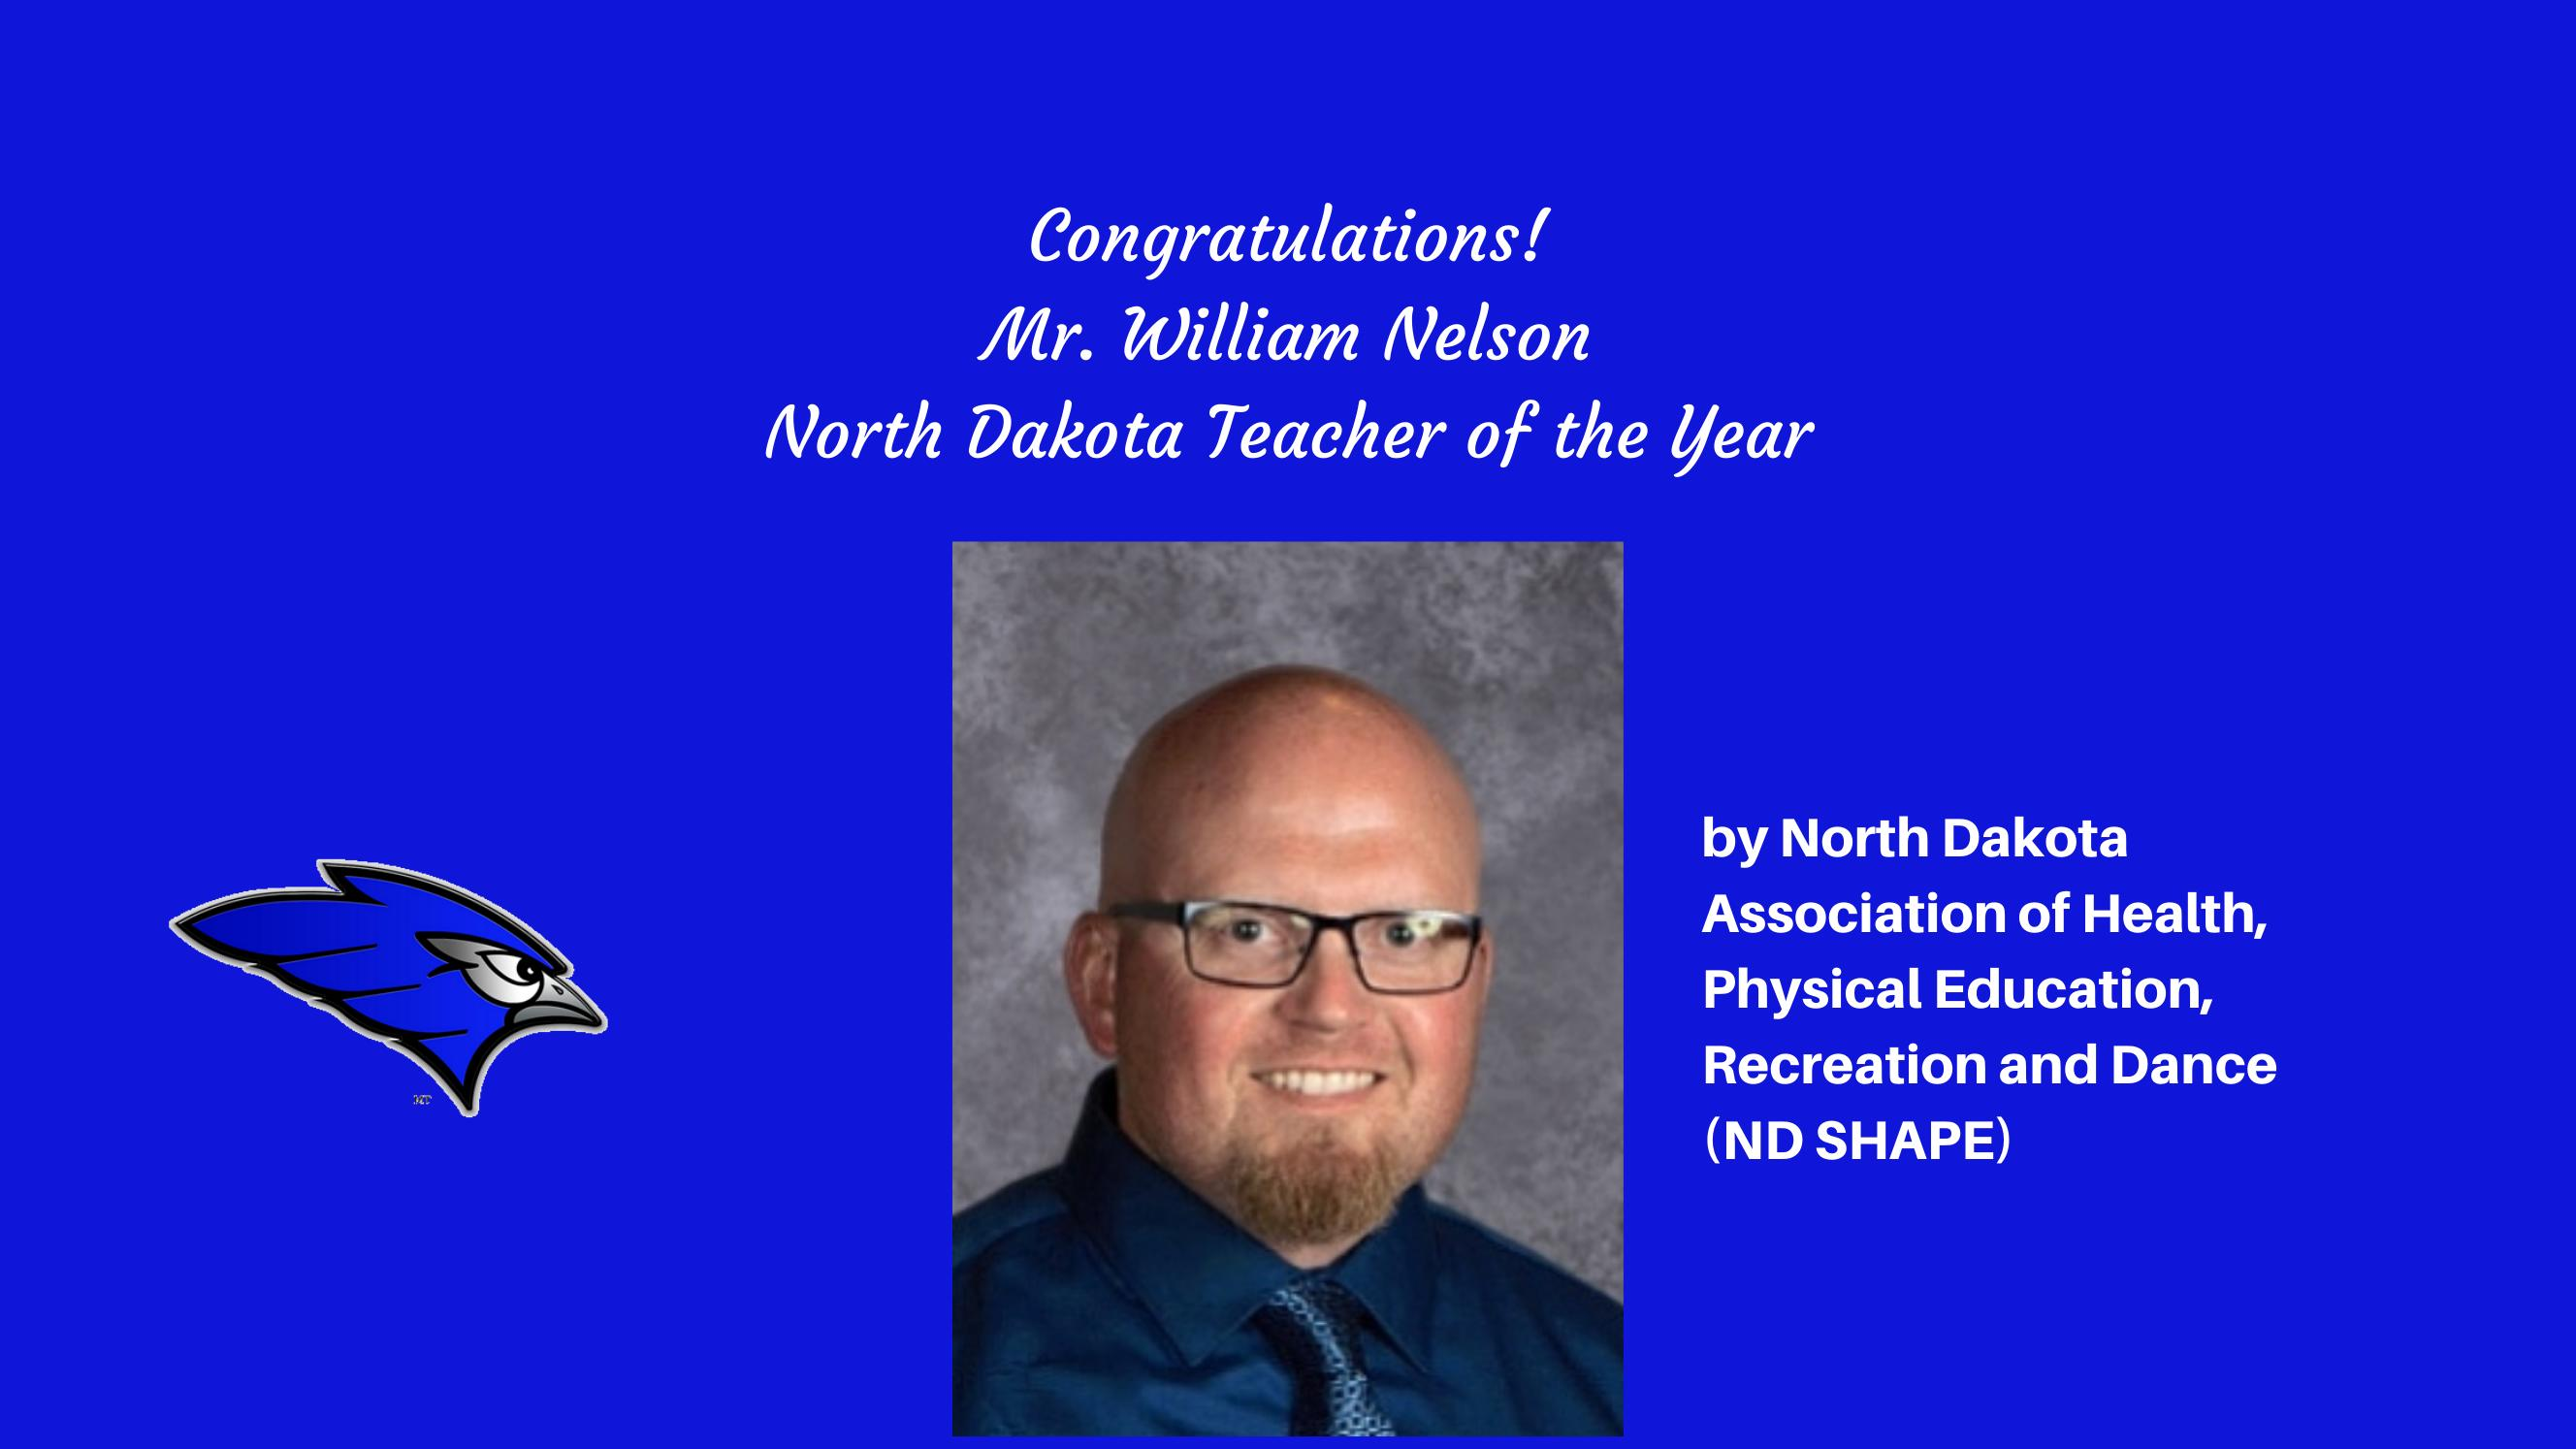 Mr. William Nelson ND Teacher of the Year by ND Association of Health, PE, Recreation and Dance